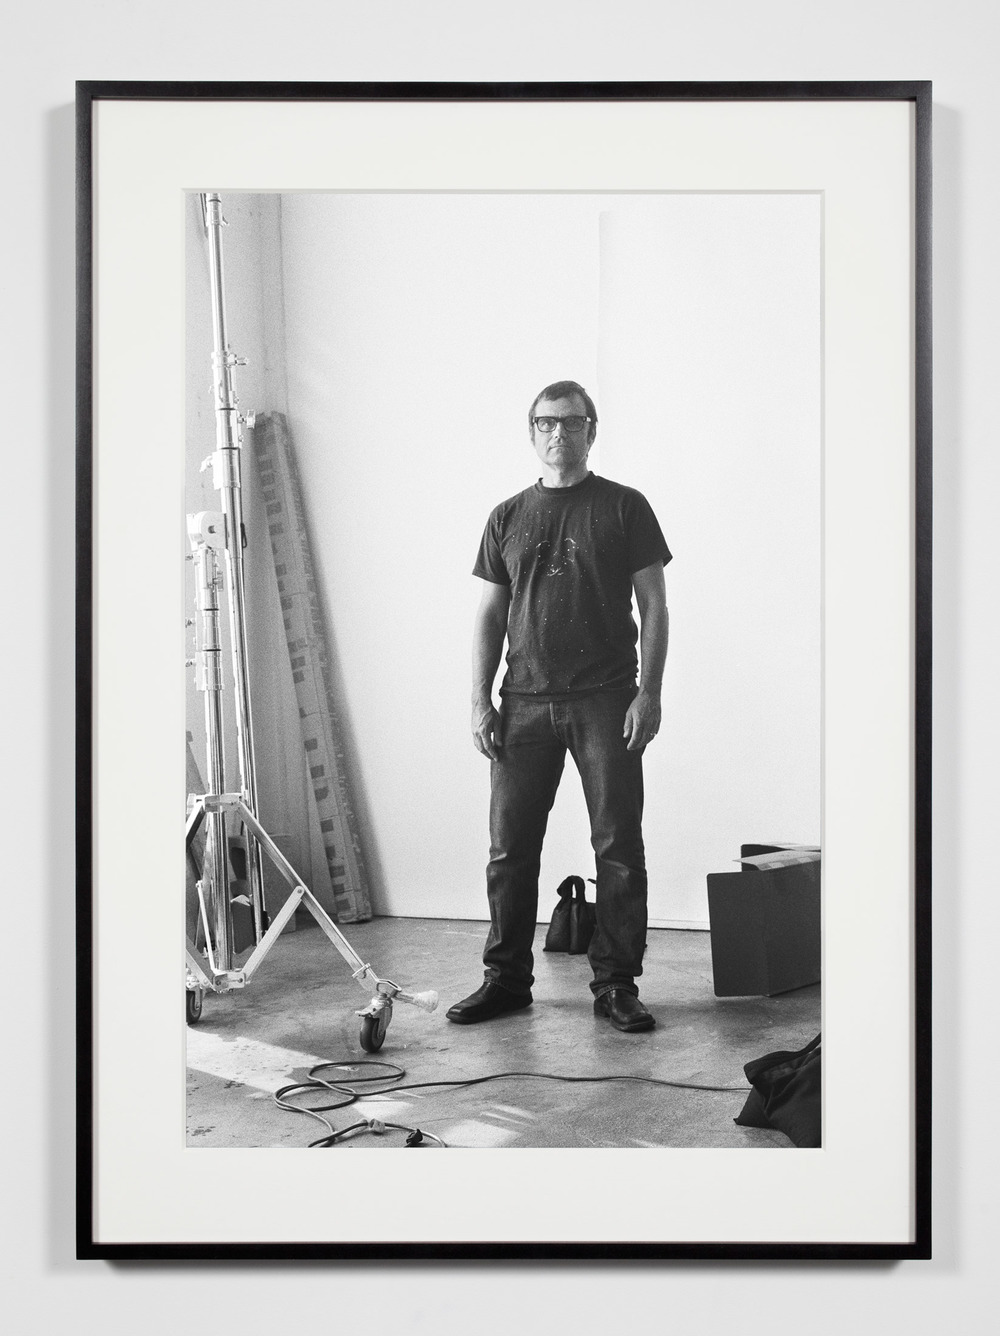 Photographer, Los Angeles, California, June 3, 2009    2011   Epson Ultrachrome K3 archival ink jet print on Hahnemühle Photo Rag paper  36 3/8 x 26 3/8 inches   Industrial Portraits, 2008–